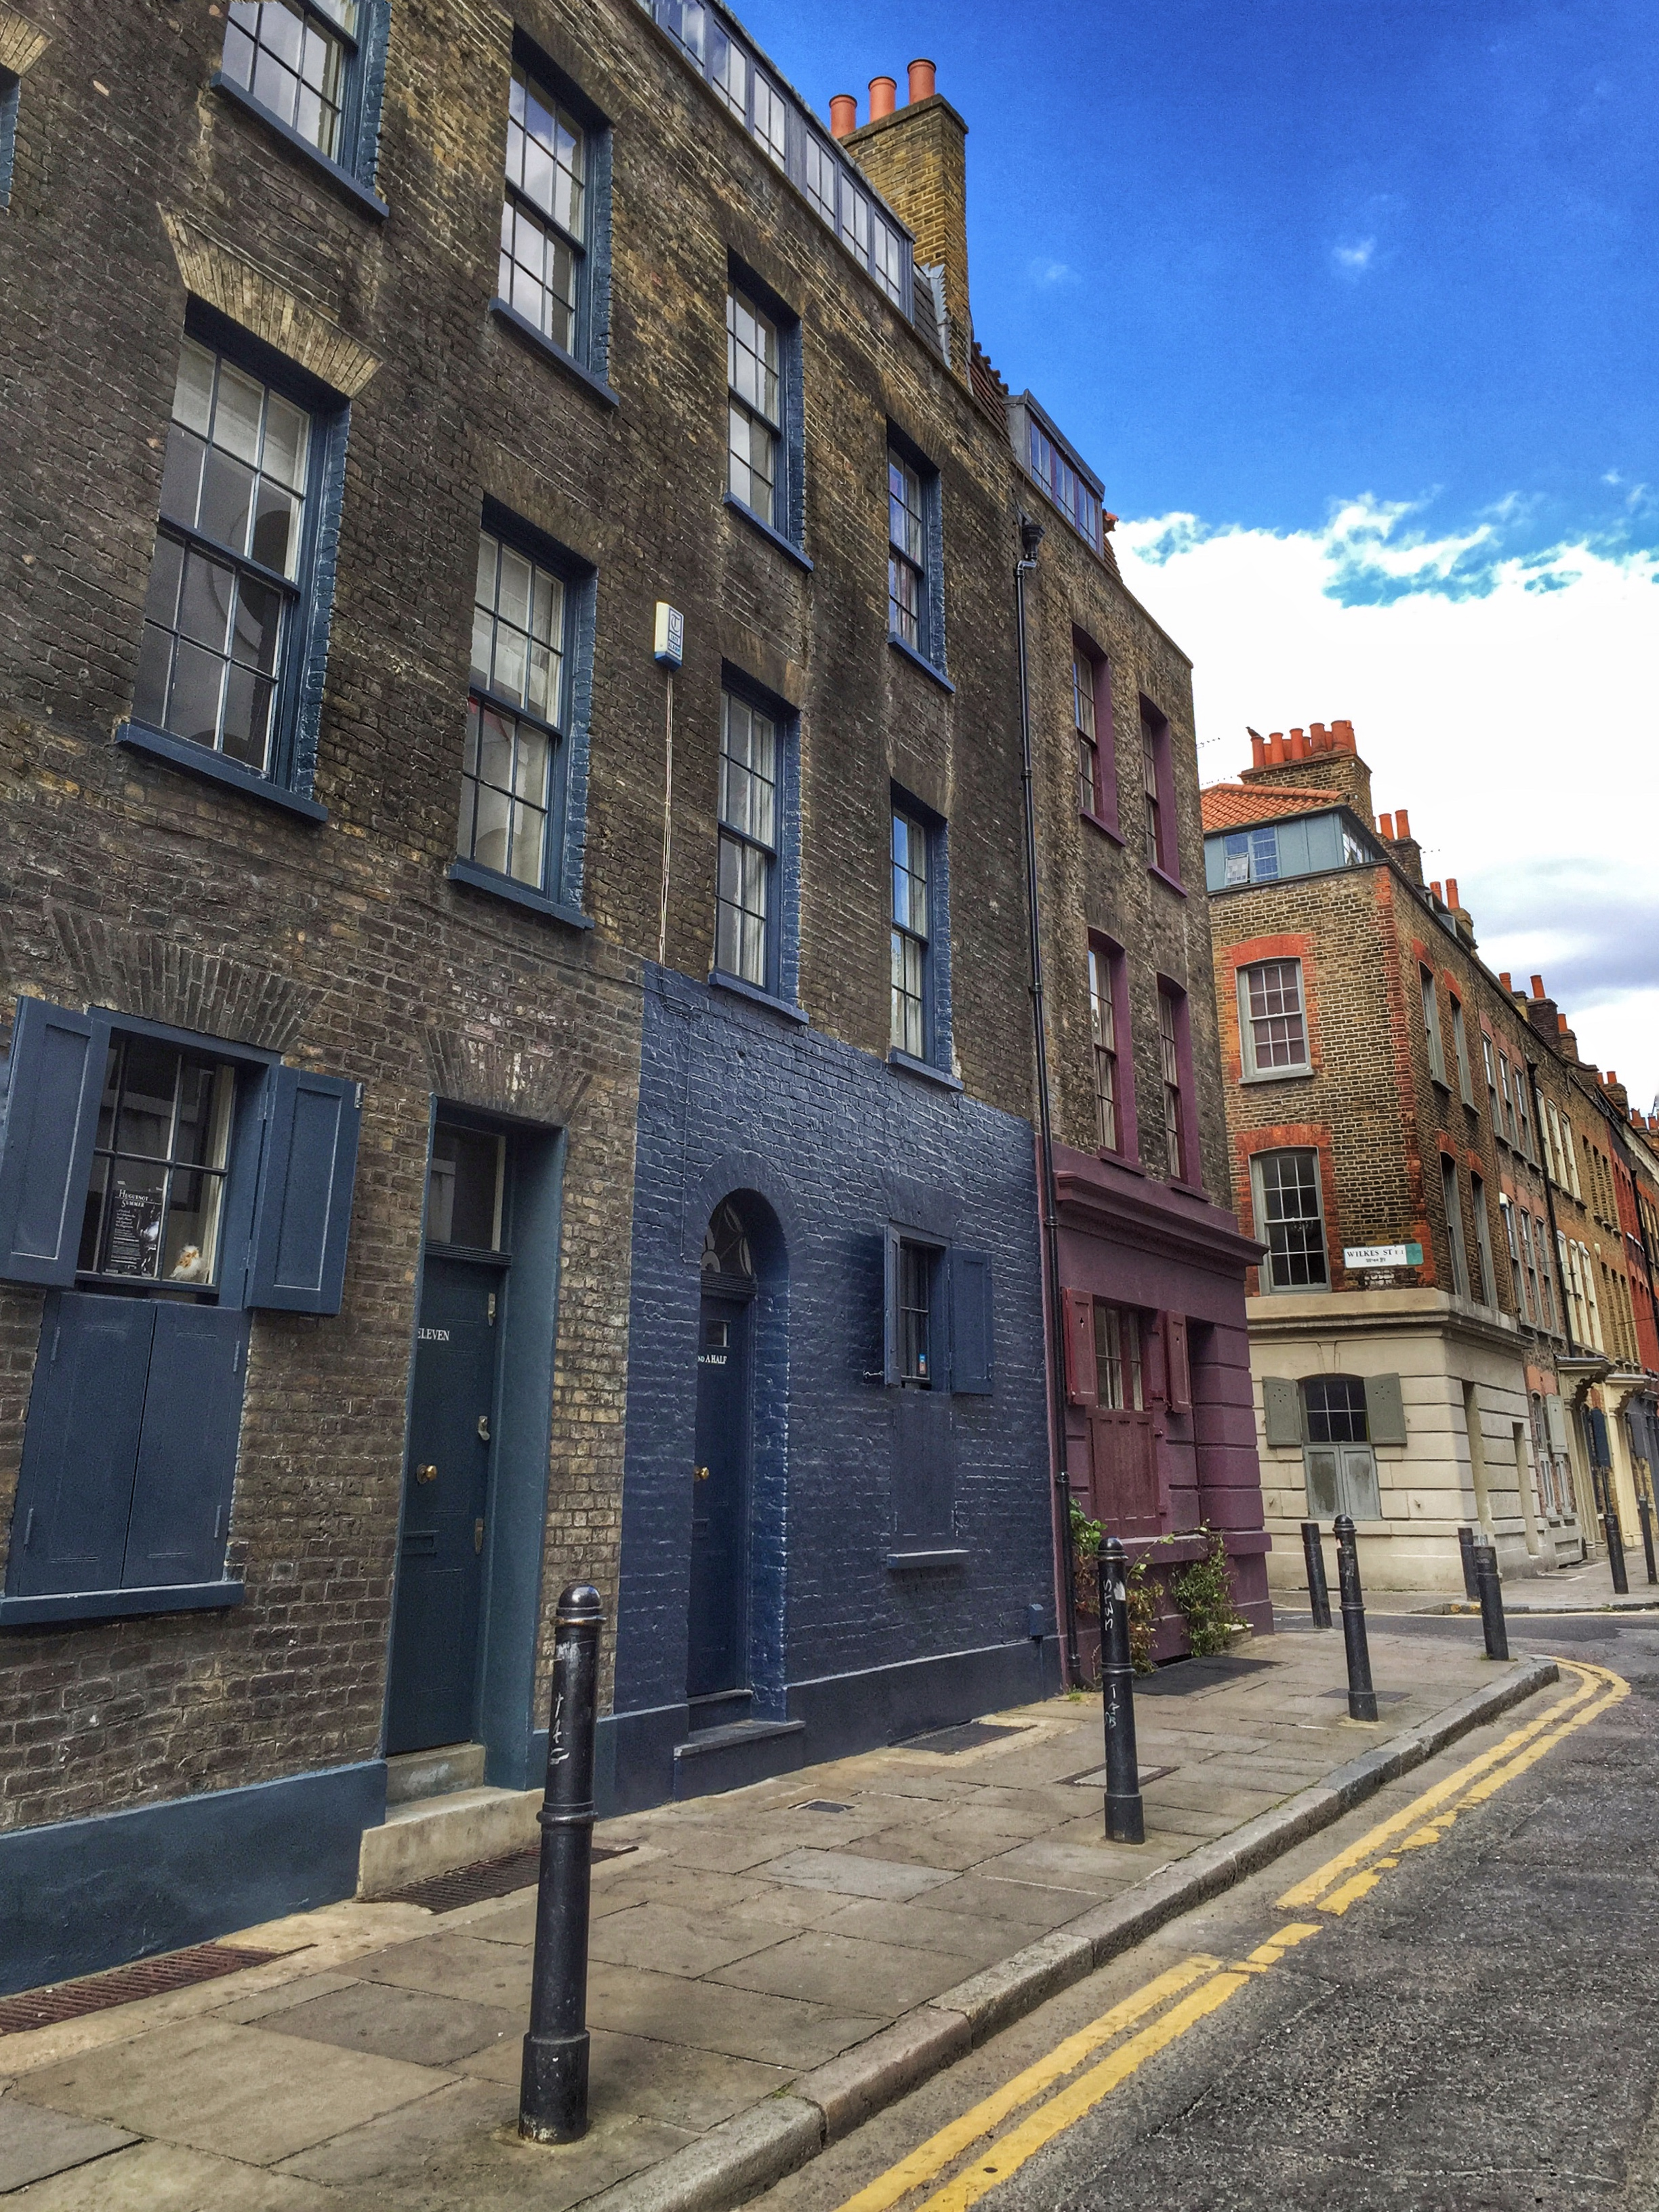 Townhouses on Fournier Street in Spitalfields